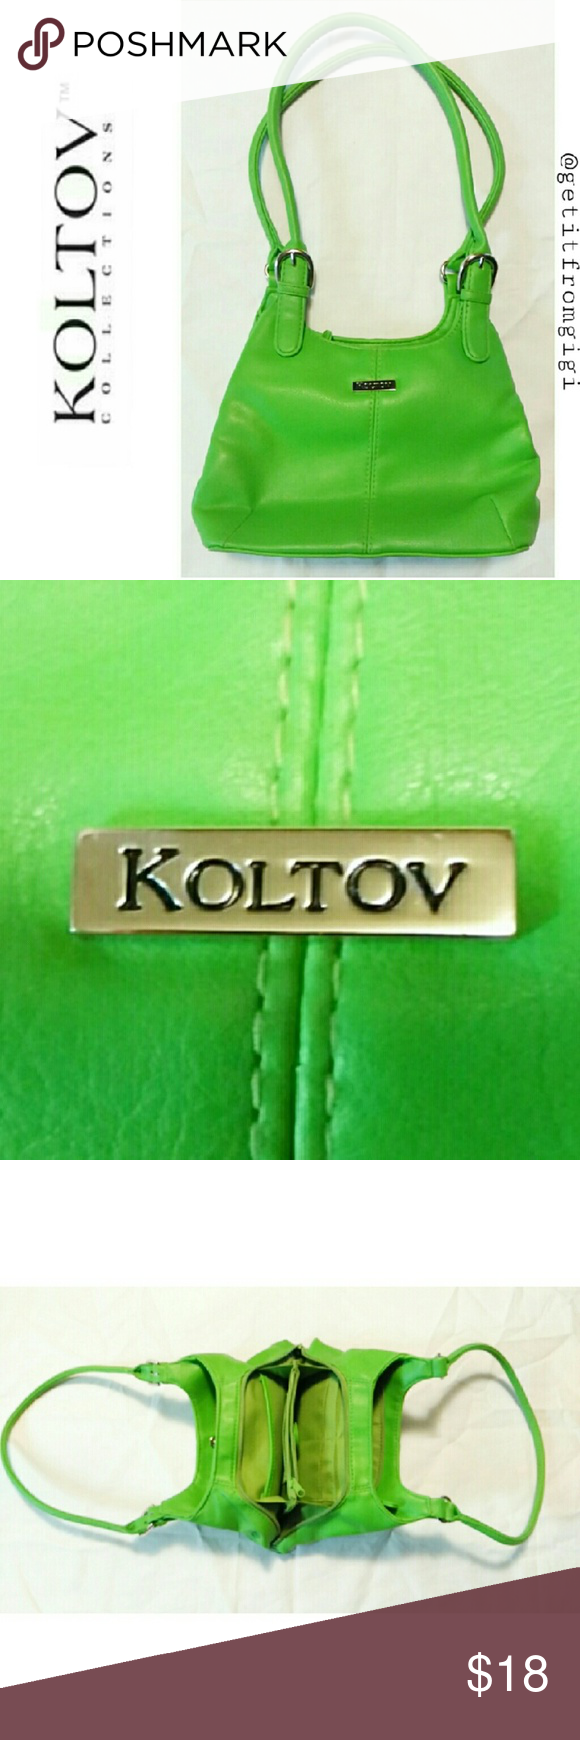 """KOLTOV Multi-Compartment Handbag Lime green. Has multiple compartments for keys, change,  cellphone... Etc. In great pre-owned condition. Measures 9""""x 6"""" x 3.5"""". Inside is clean as well. koltov Bags Mini Bags"""